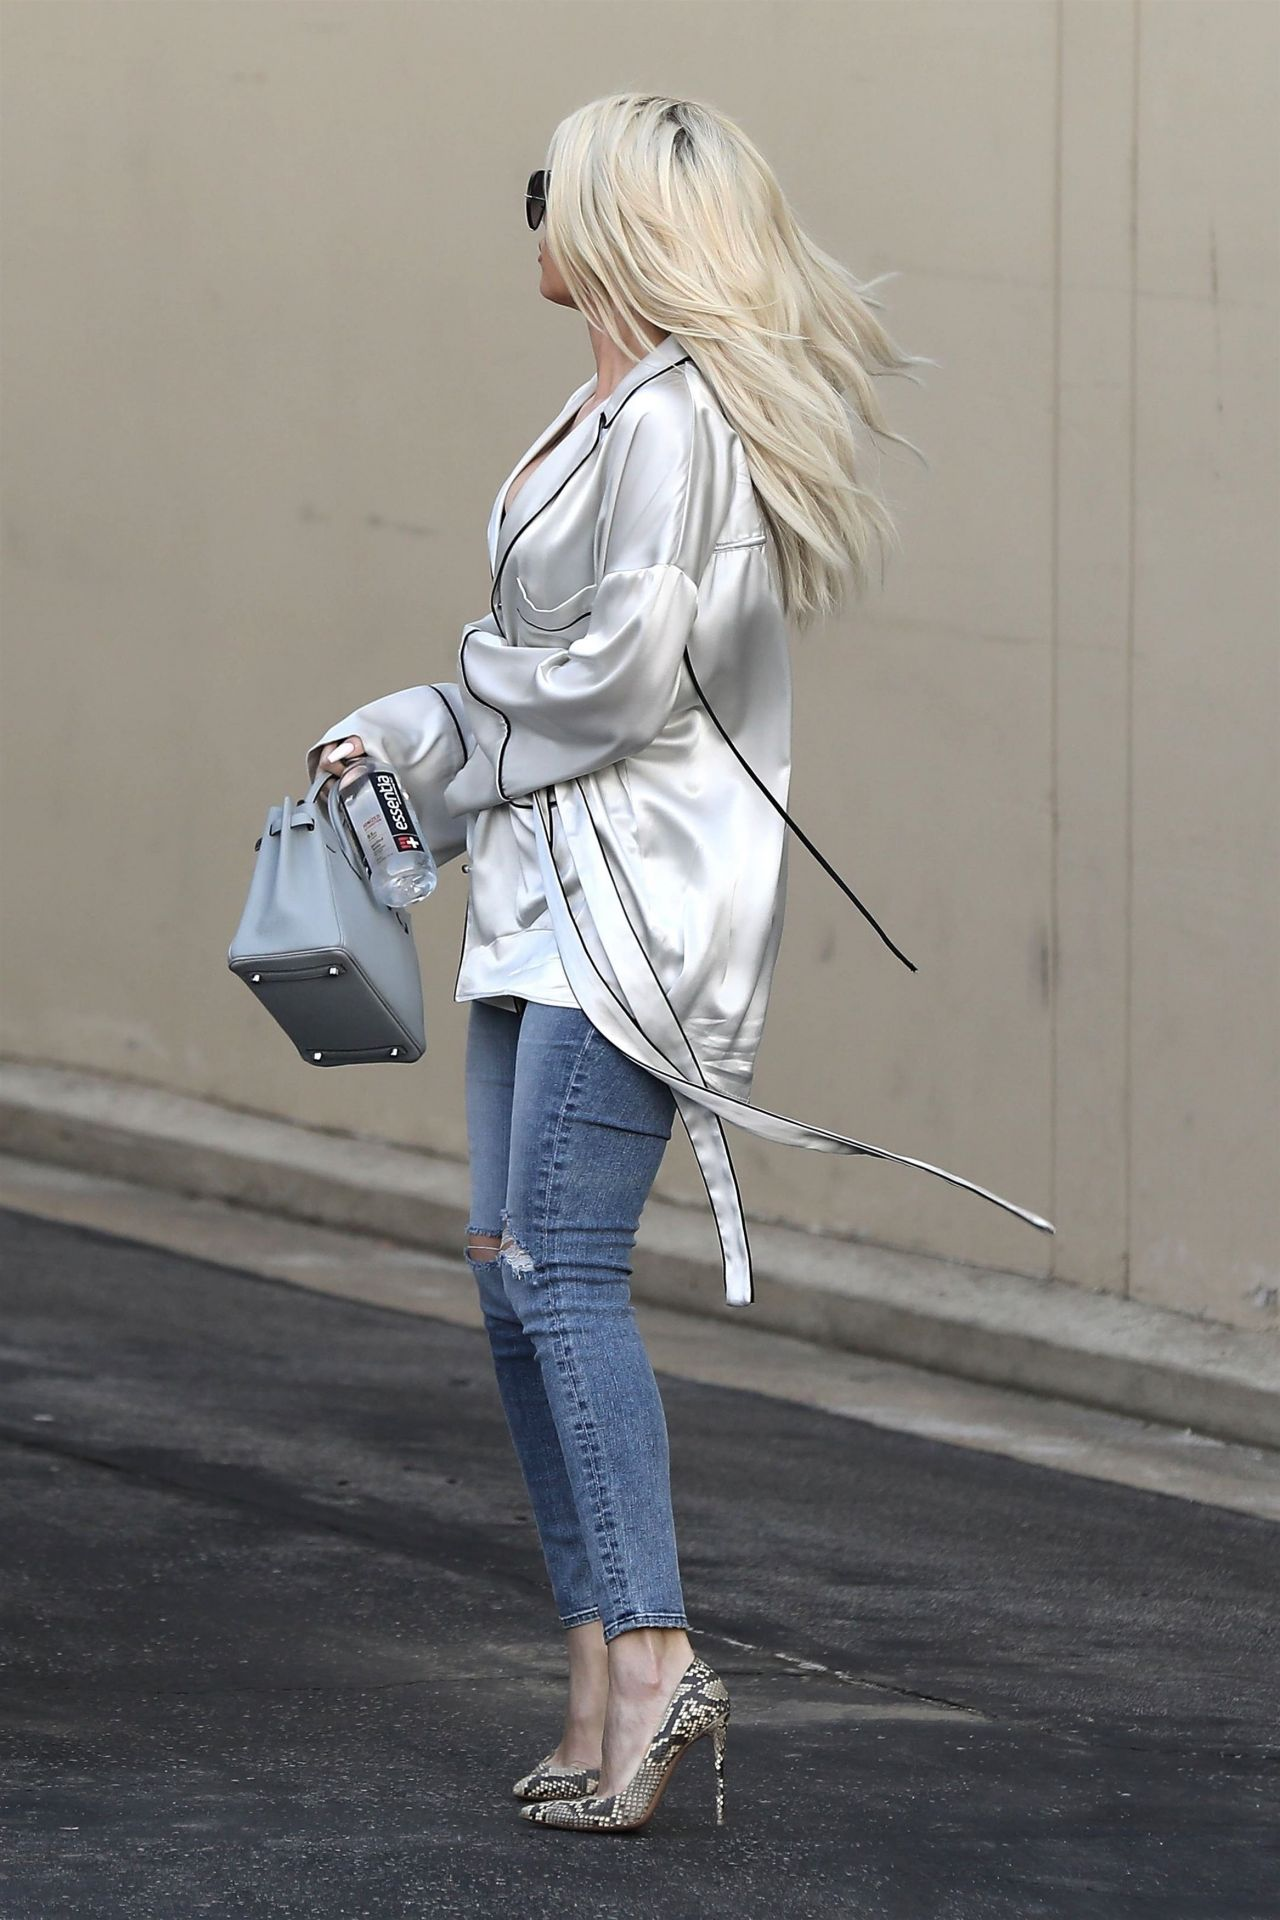 Khloe Kardashian Leaving A Studio In Calabasas 01 09 2019